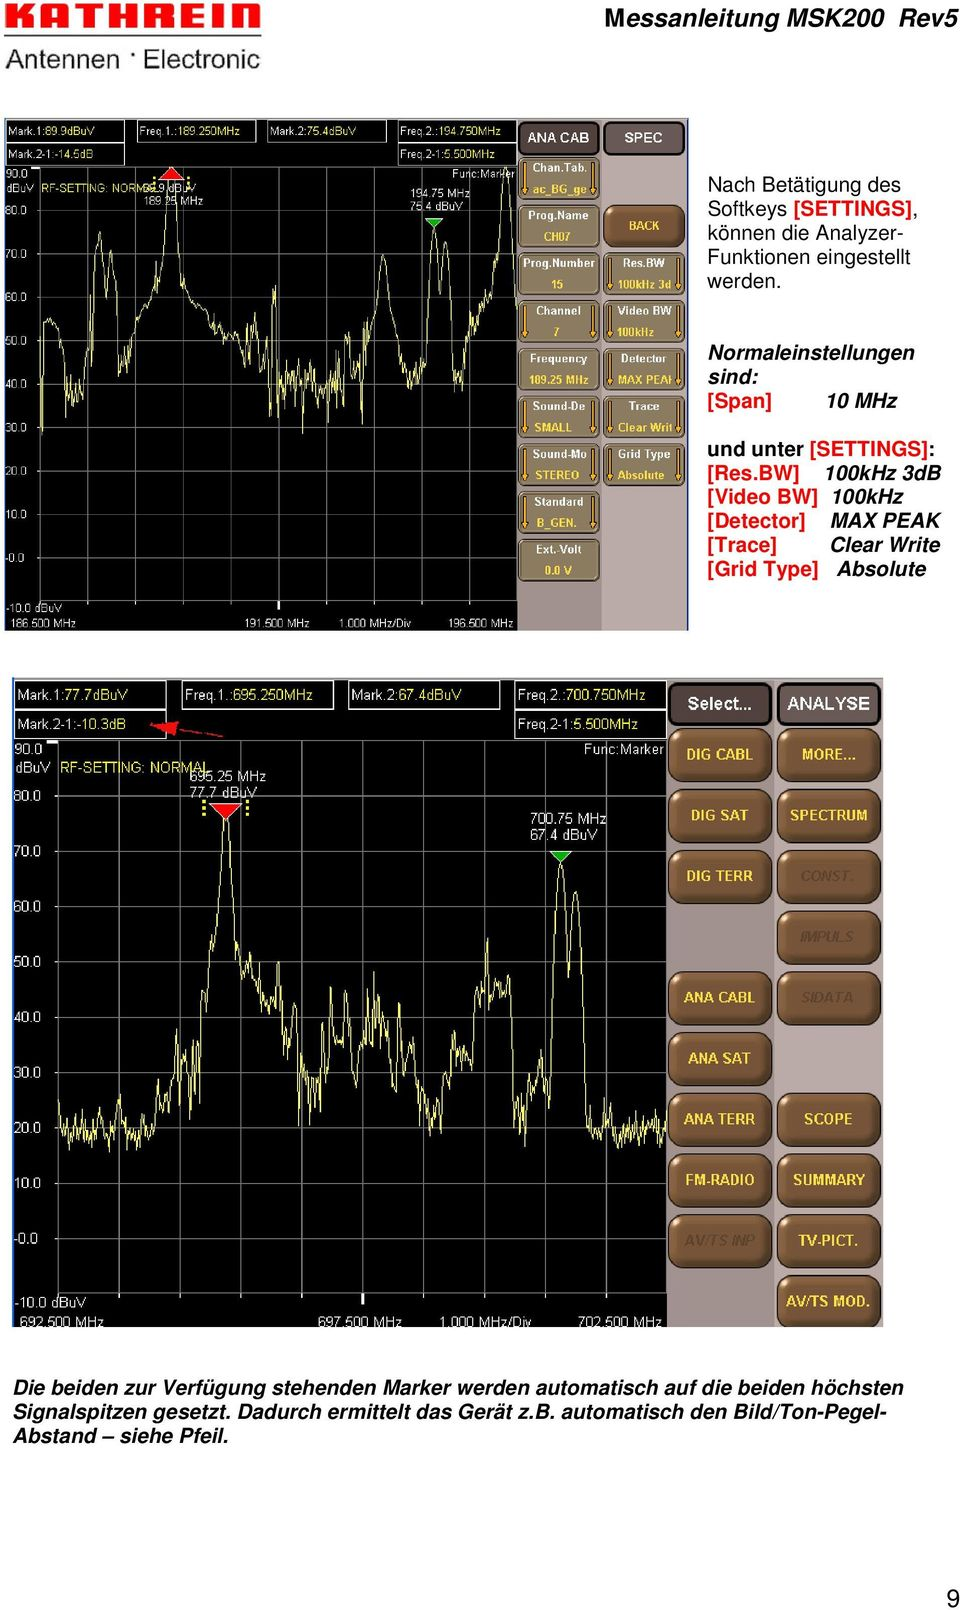 BW] 100kHz 3dB [Video BW] 100kHz [Detector] MAX PEAK [Trace] Clear Write [Grid Type] Absolute Die beiden zur